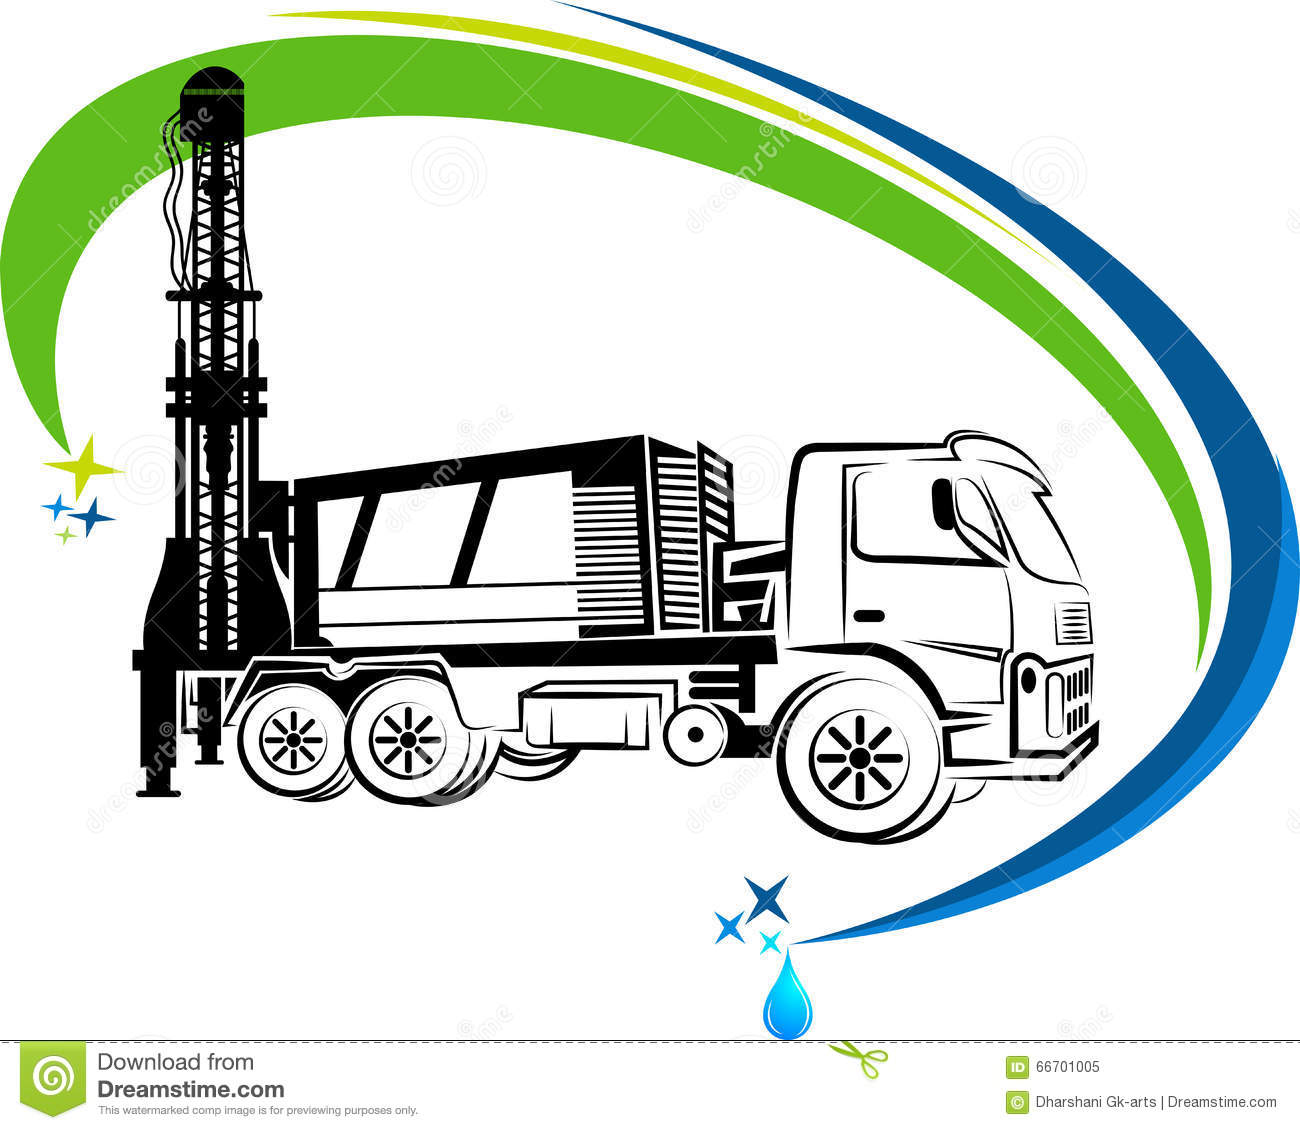 well-drilling-truck-logo-background-66701005 Water Well Pump House Plans on water well pumps motors, homemade pvc well pump plans, water pumps types, wooden well pump cover plans, pump track plans, water ram pump system, water well hand pump plans, water well pumps and supplies, water heater circulating pump diagram, water well buildings, rope pump plans, water ram plans, water well casing diagram, water well hand pumps sale, water well house ideas, water tank house plans, geyser pump plans, water well design, wishing well plans,